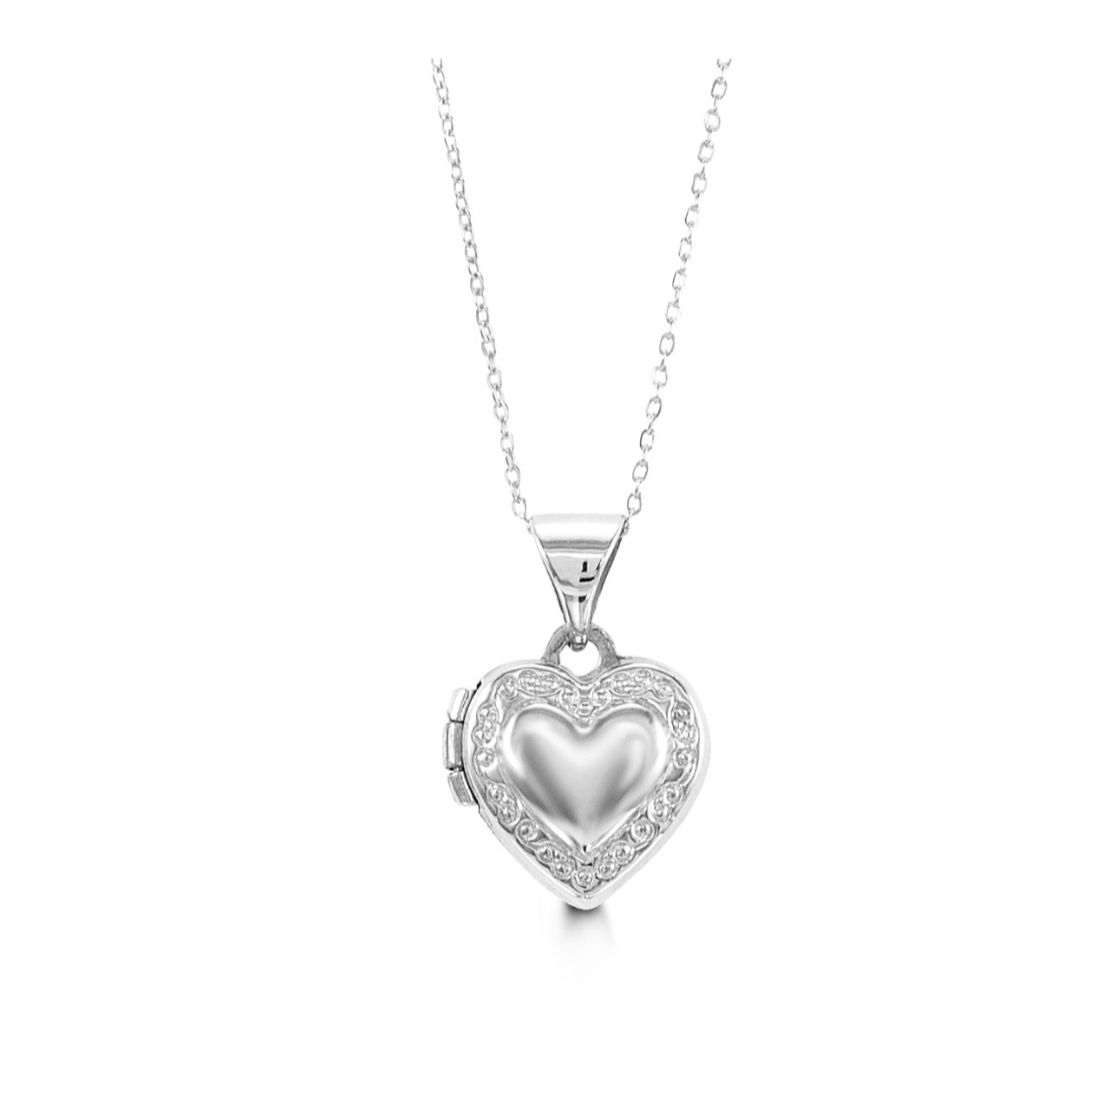 White Gold Locket and Chain